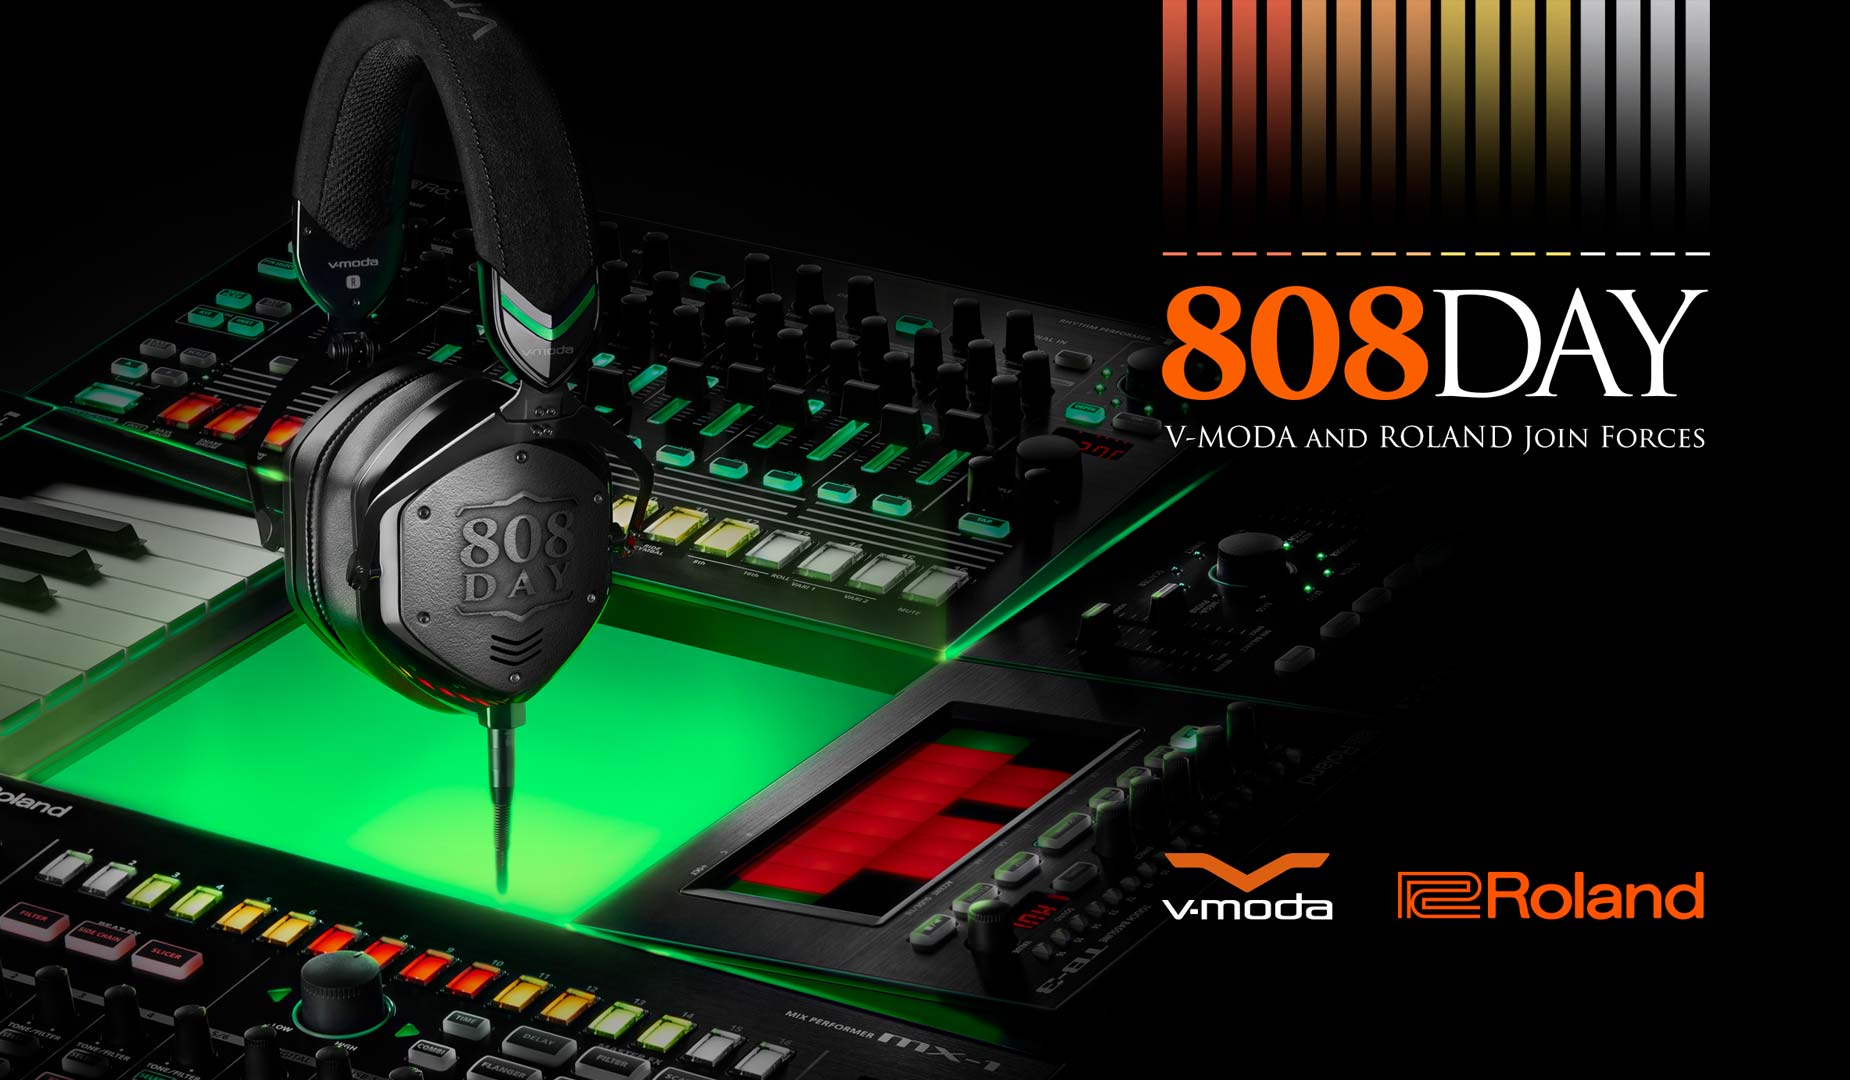 V-MODA and Roland Join Forces